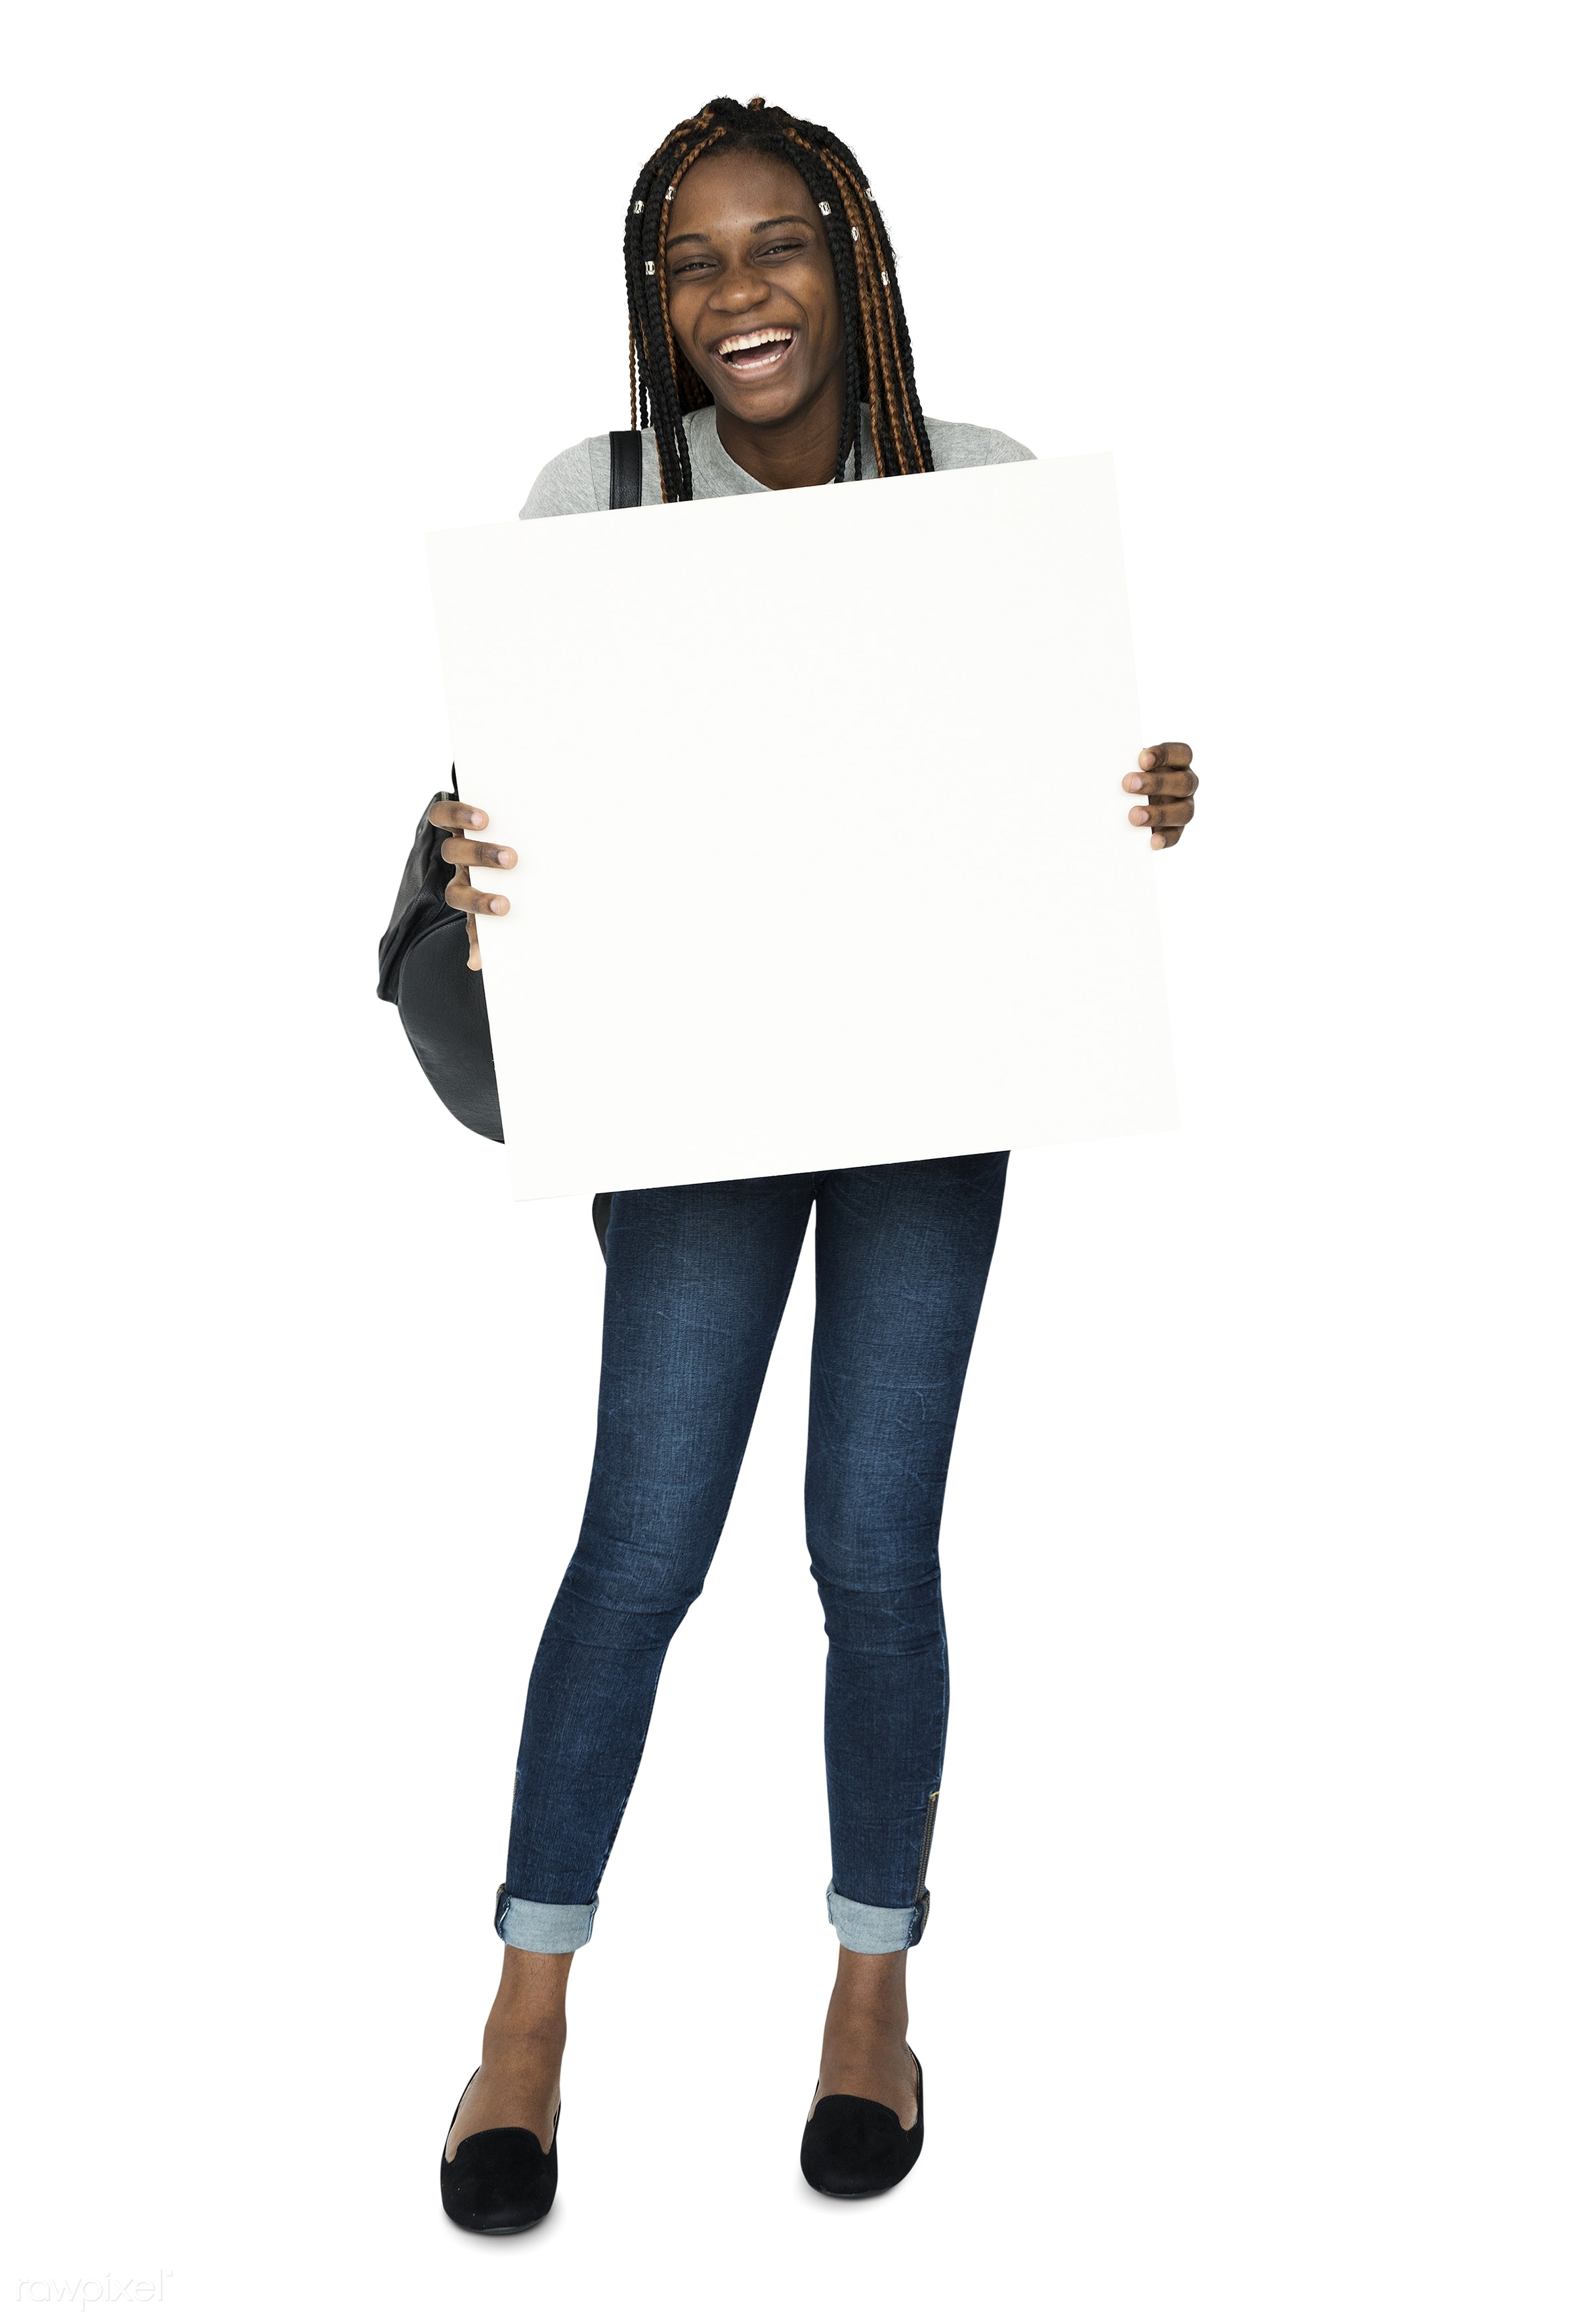 advertising, african descent, alone, black, blank, board, cheerful, copy space, empty, female, full body, full length, girl...